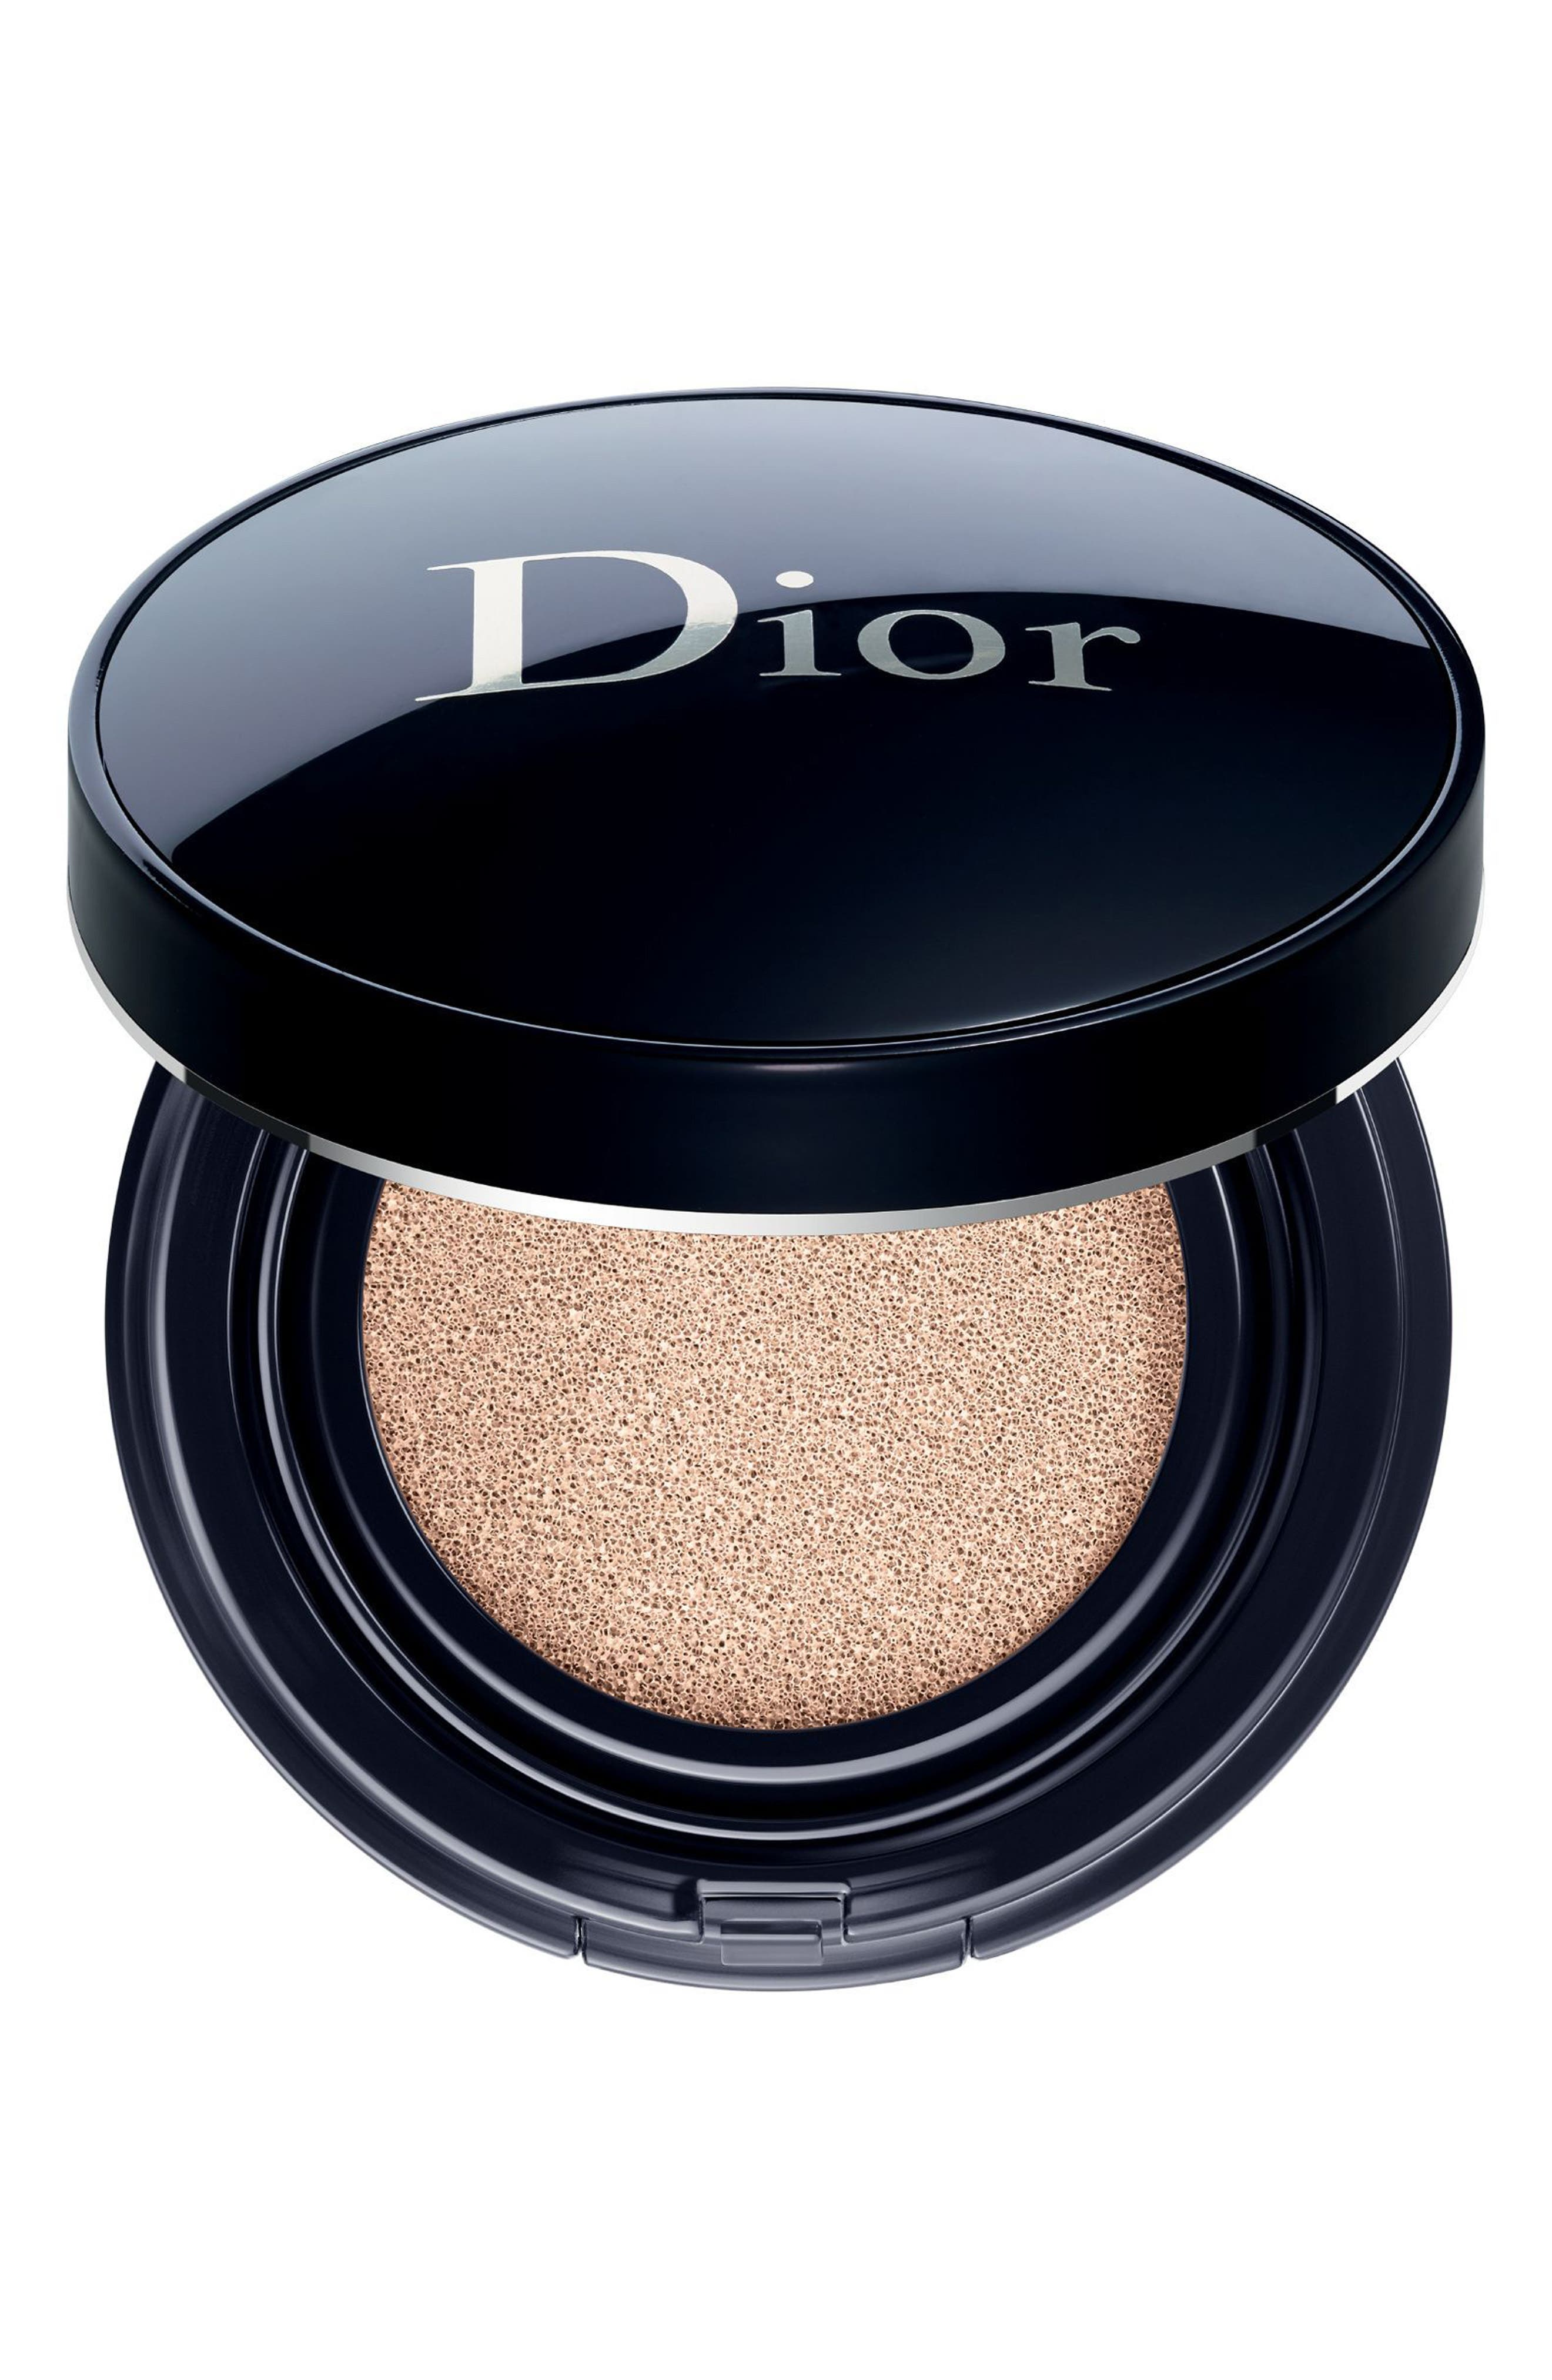 Dior Diorskin Forever Perfect Cushion Foundation Broad Spectrum Spf 35 - 010 Ivory